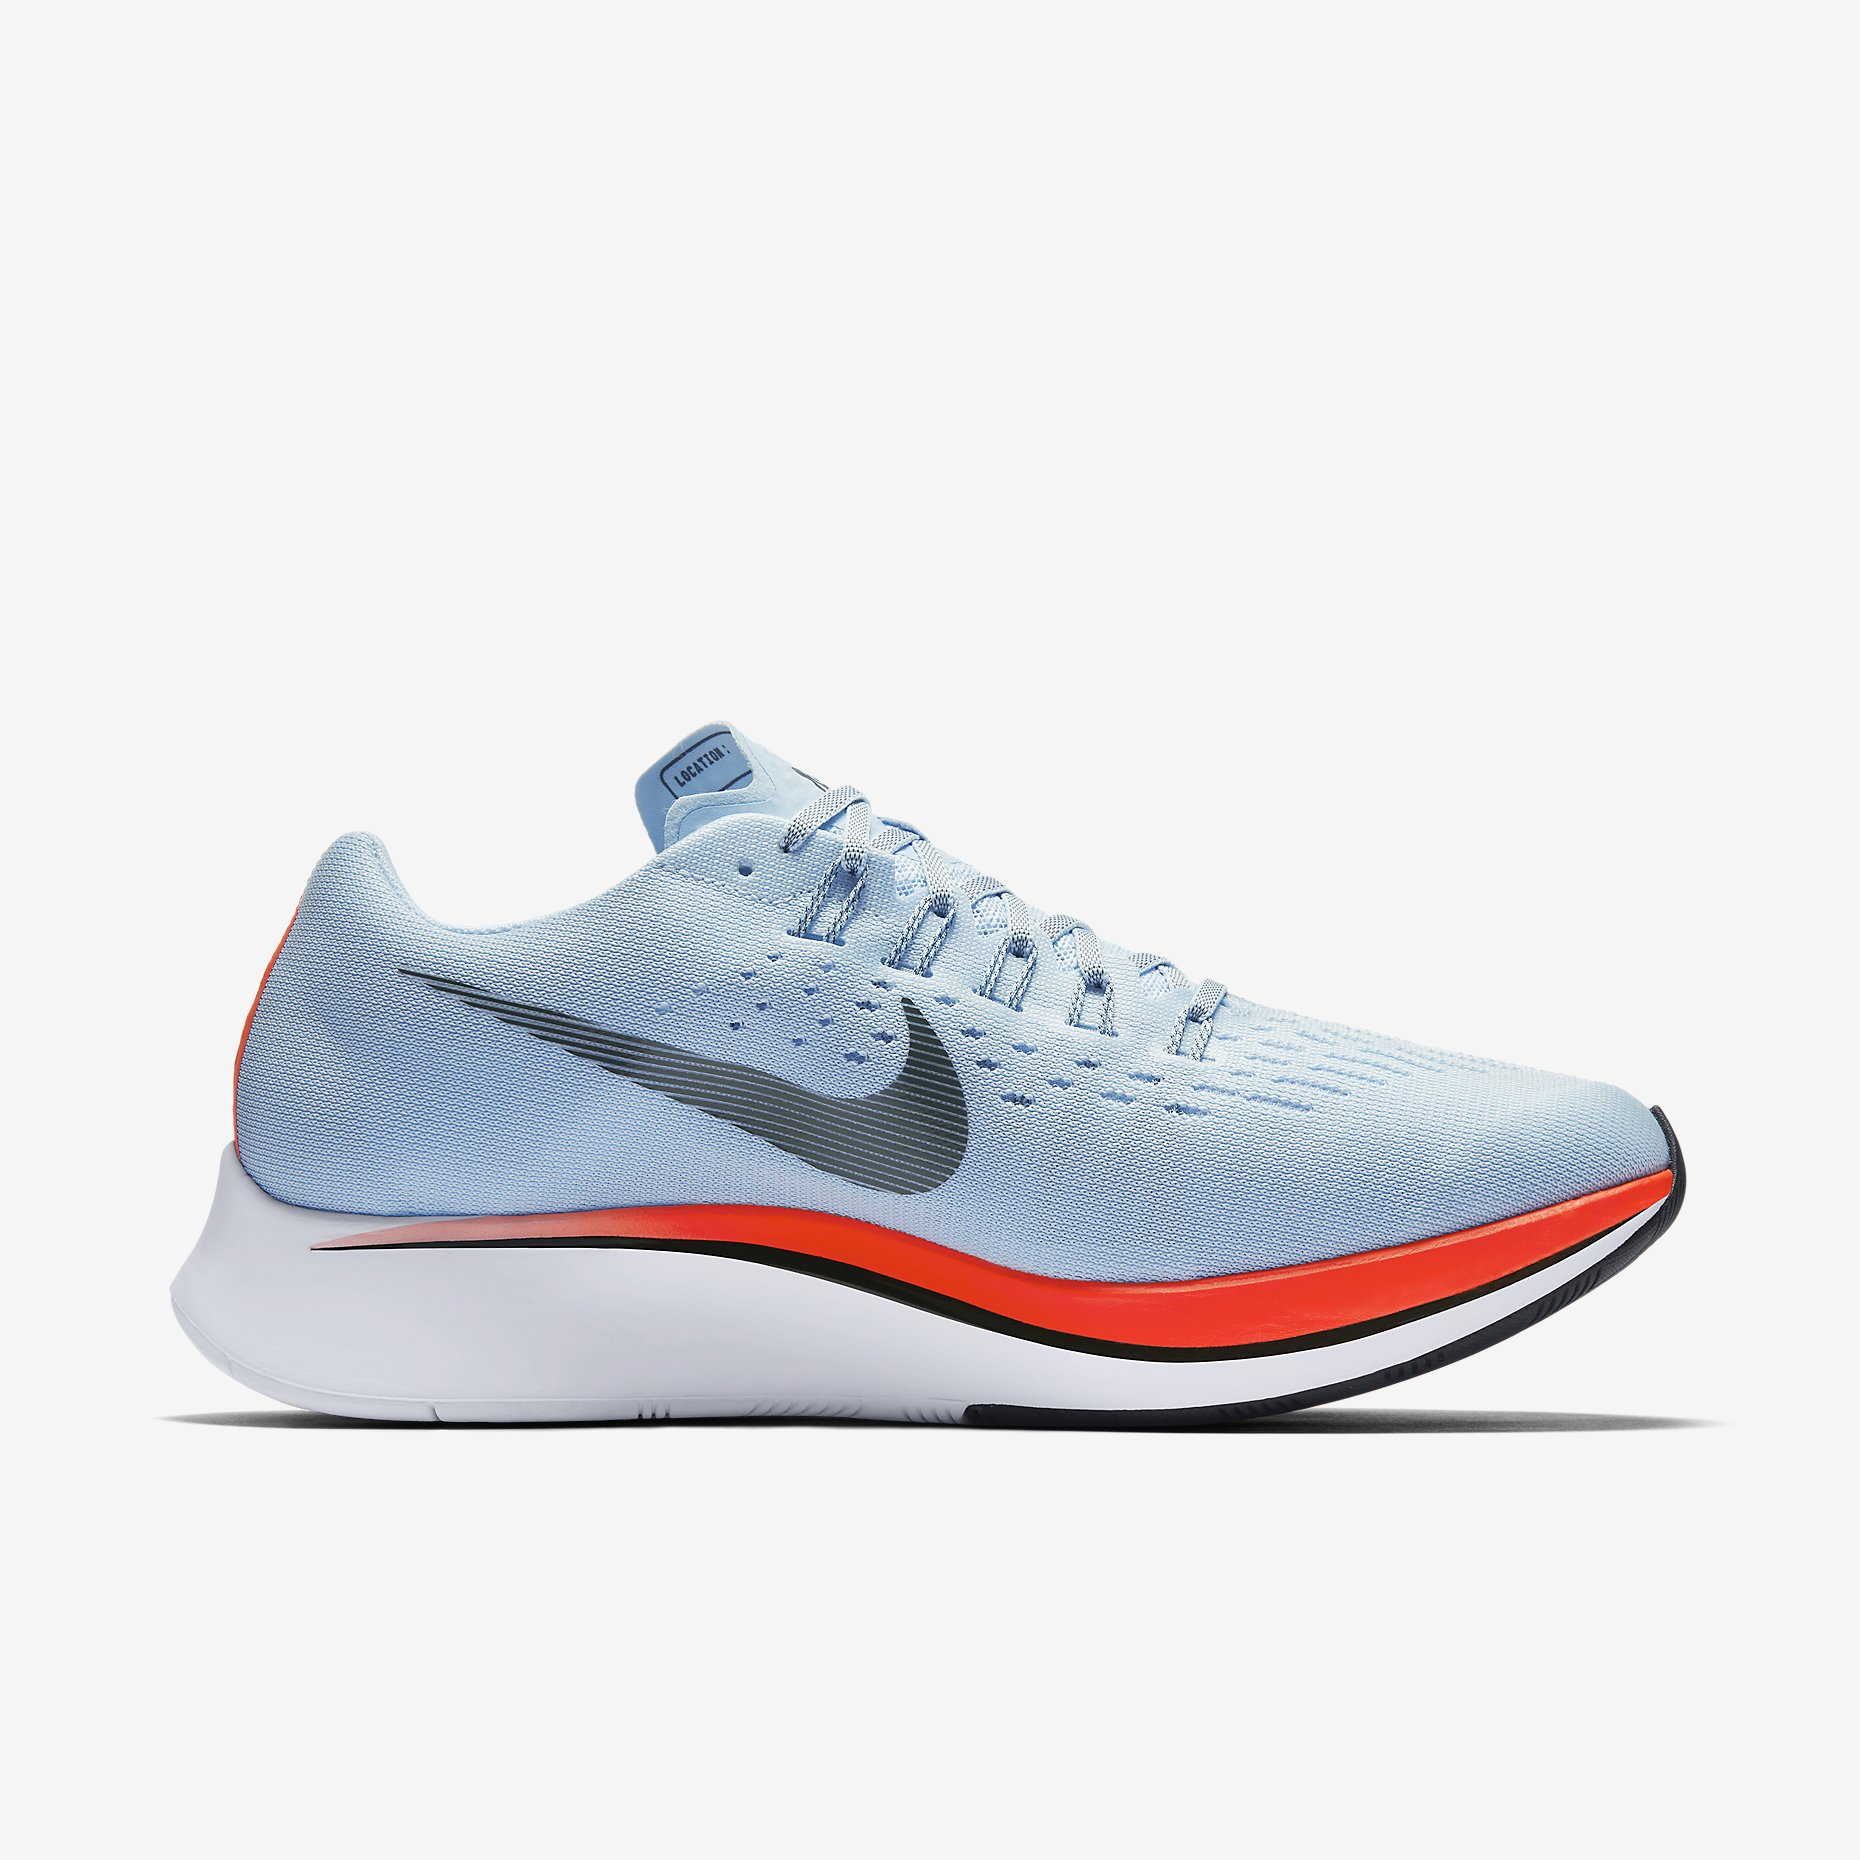 8b51062fe347 Nike Zoom Fly Men s Running Shoe - Sub 2 - Alton Sports